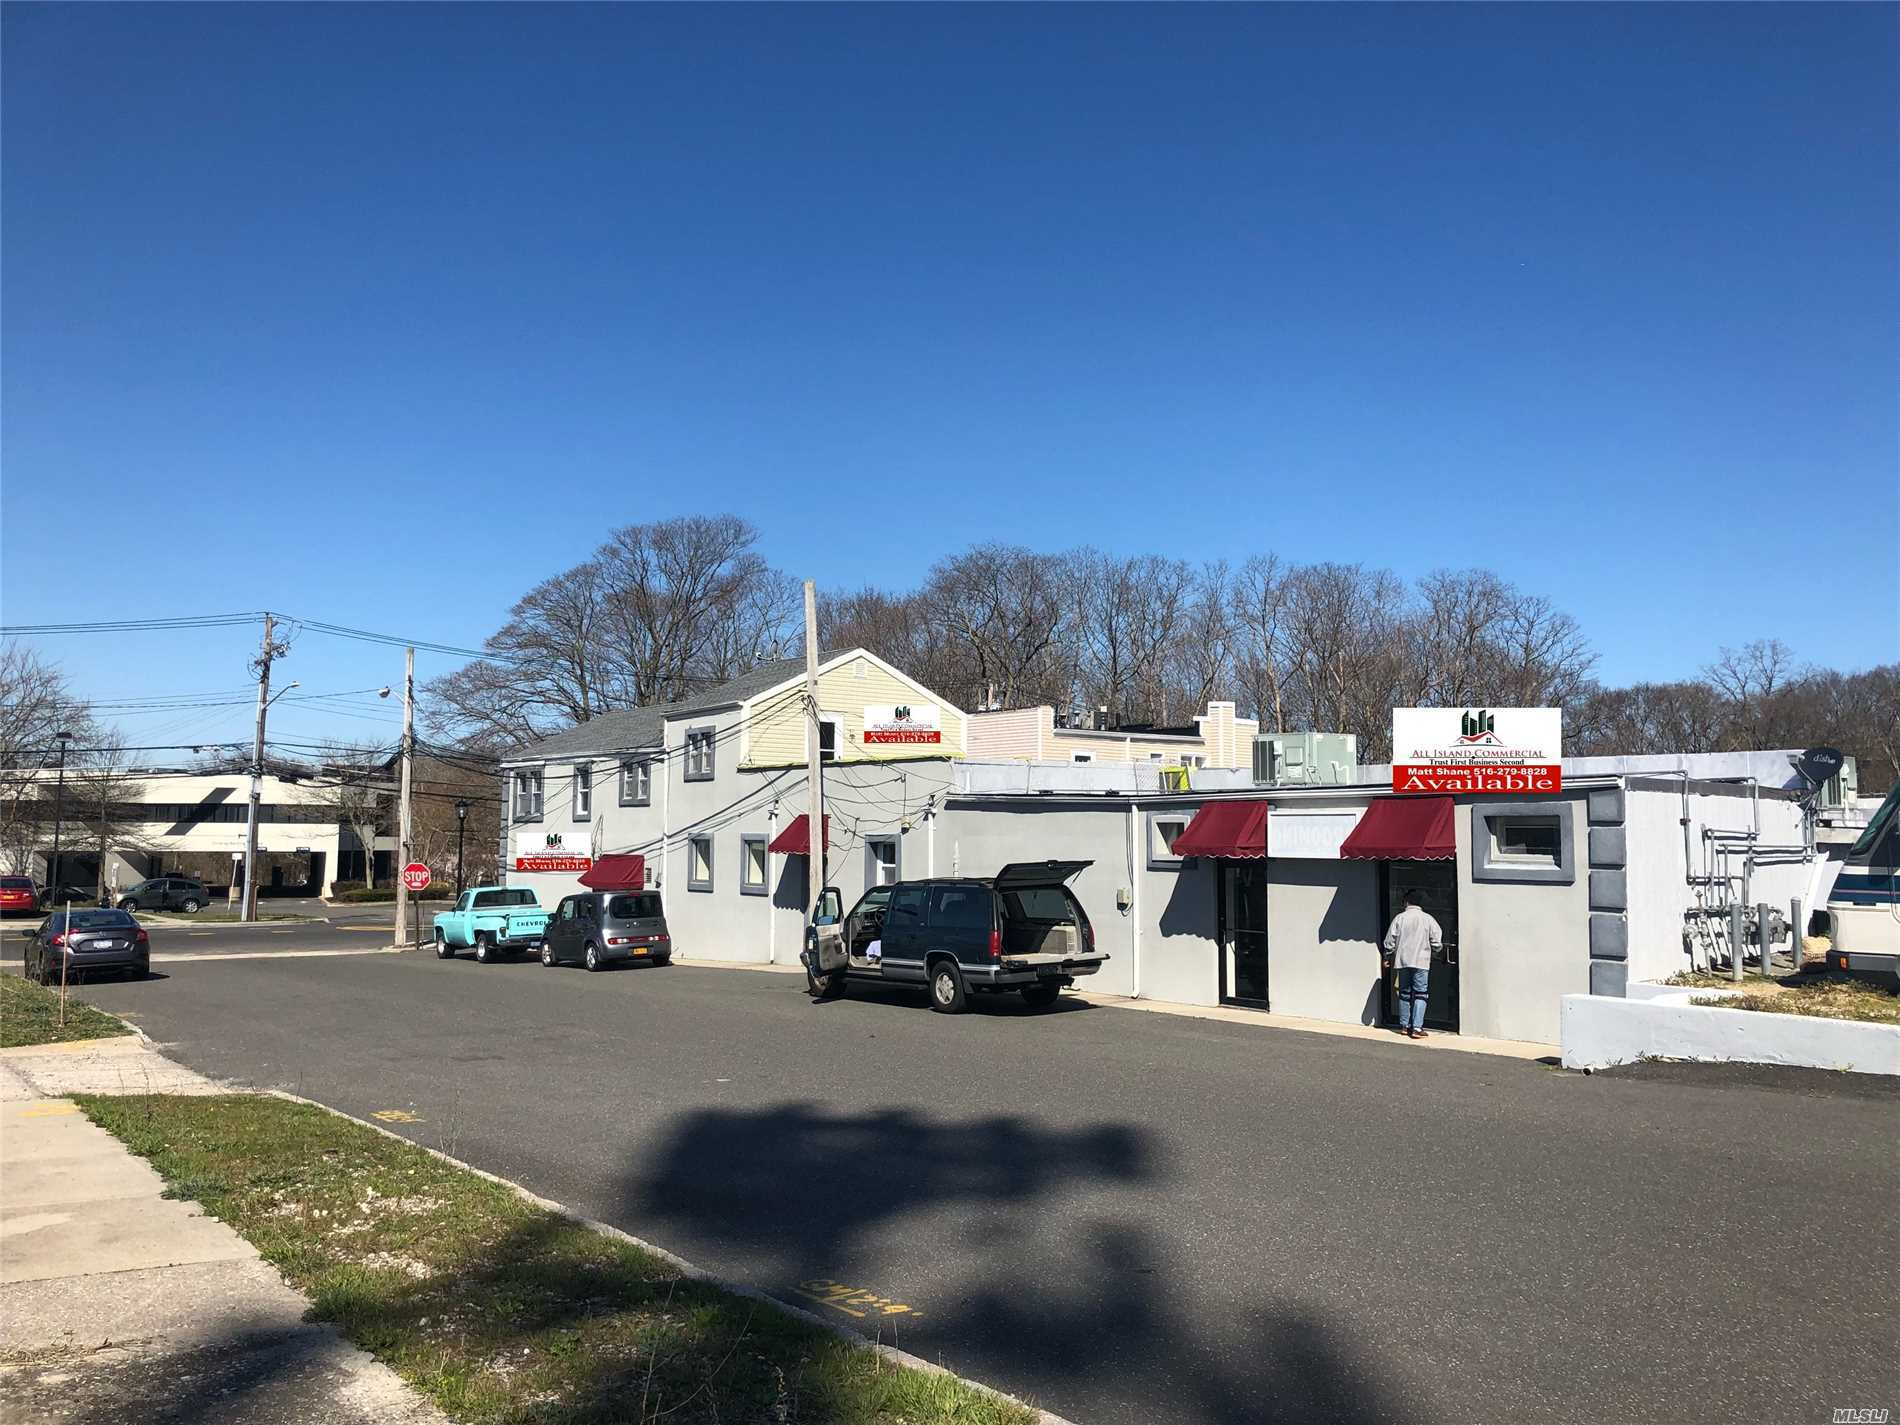 Calling All Investors & End-Users!!! Excellent Mixed-Use 4 Unit Corner Retail/ Office Building For Sale On Busy Hawkins Ave. The Property Features 25+ Parking Spaces, New Led Lighting, Two Bedroom Apartment With A 2nd Floor Mezzanine, +++!!!